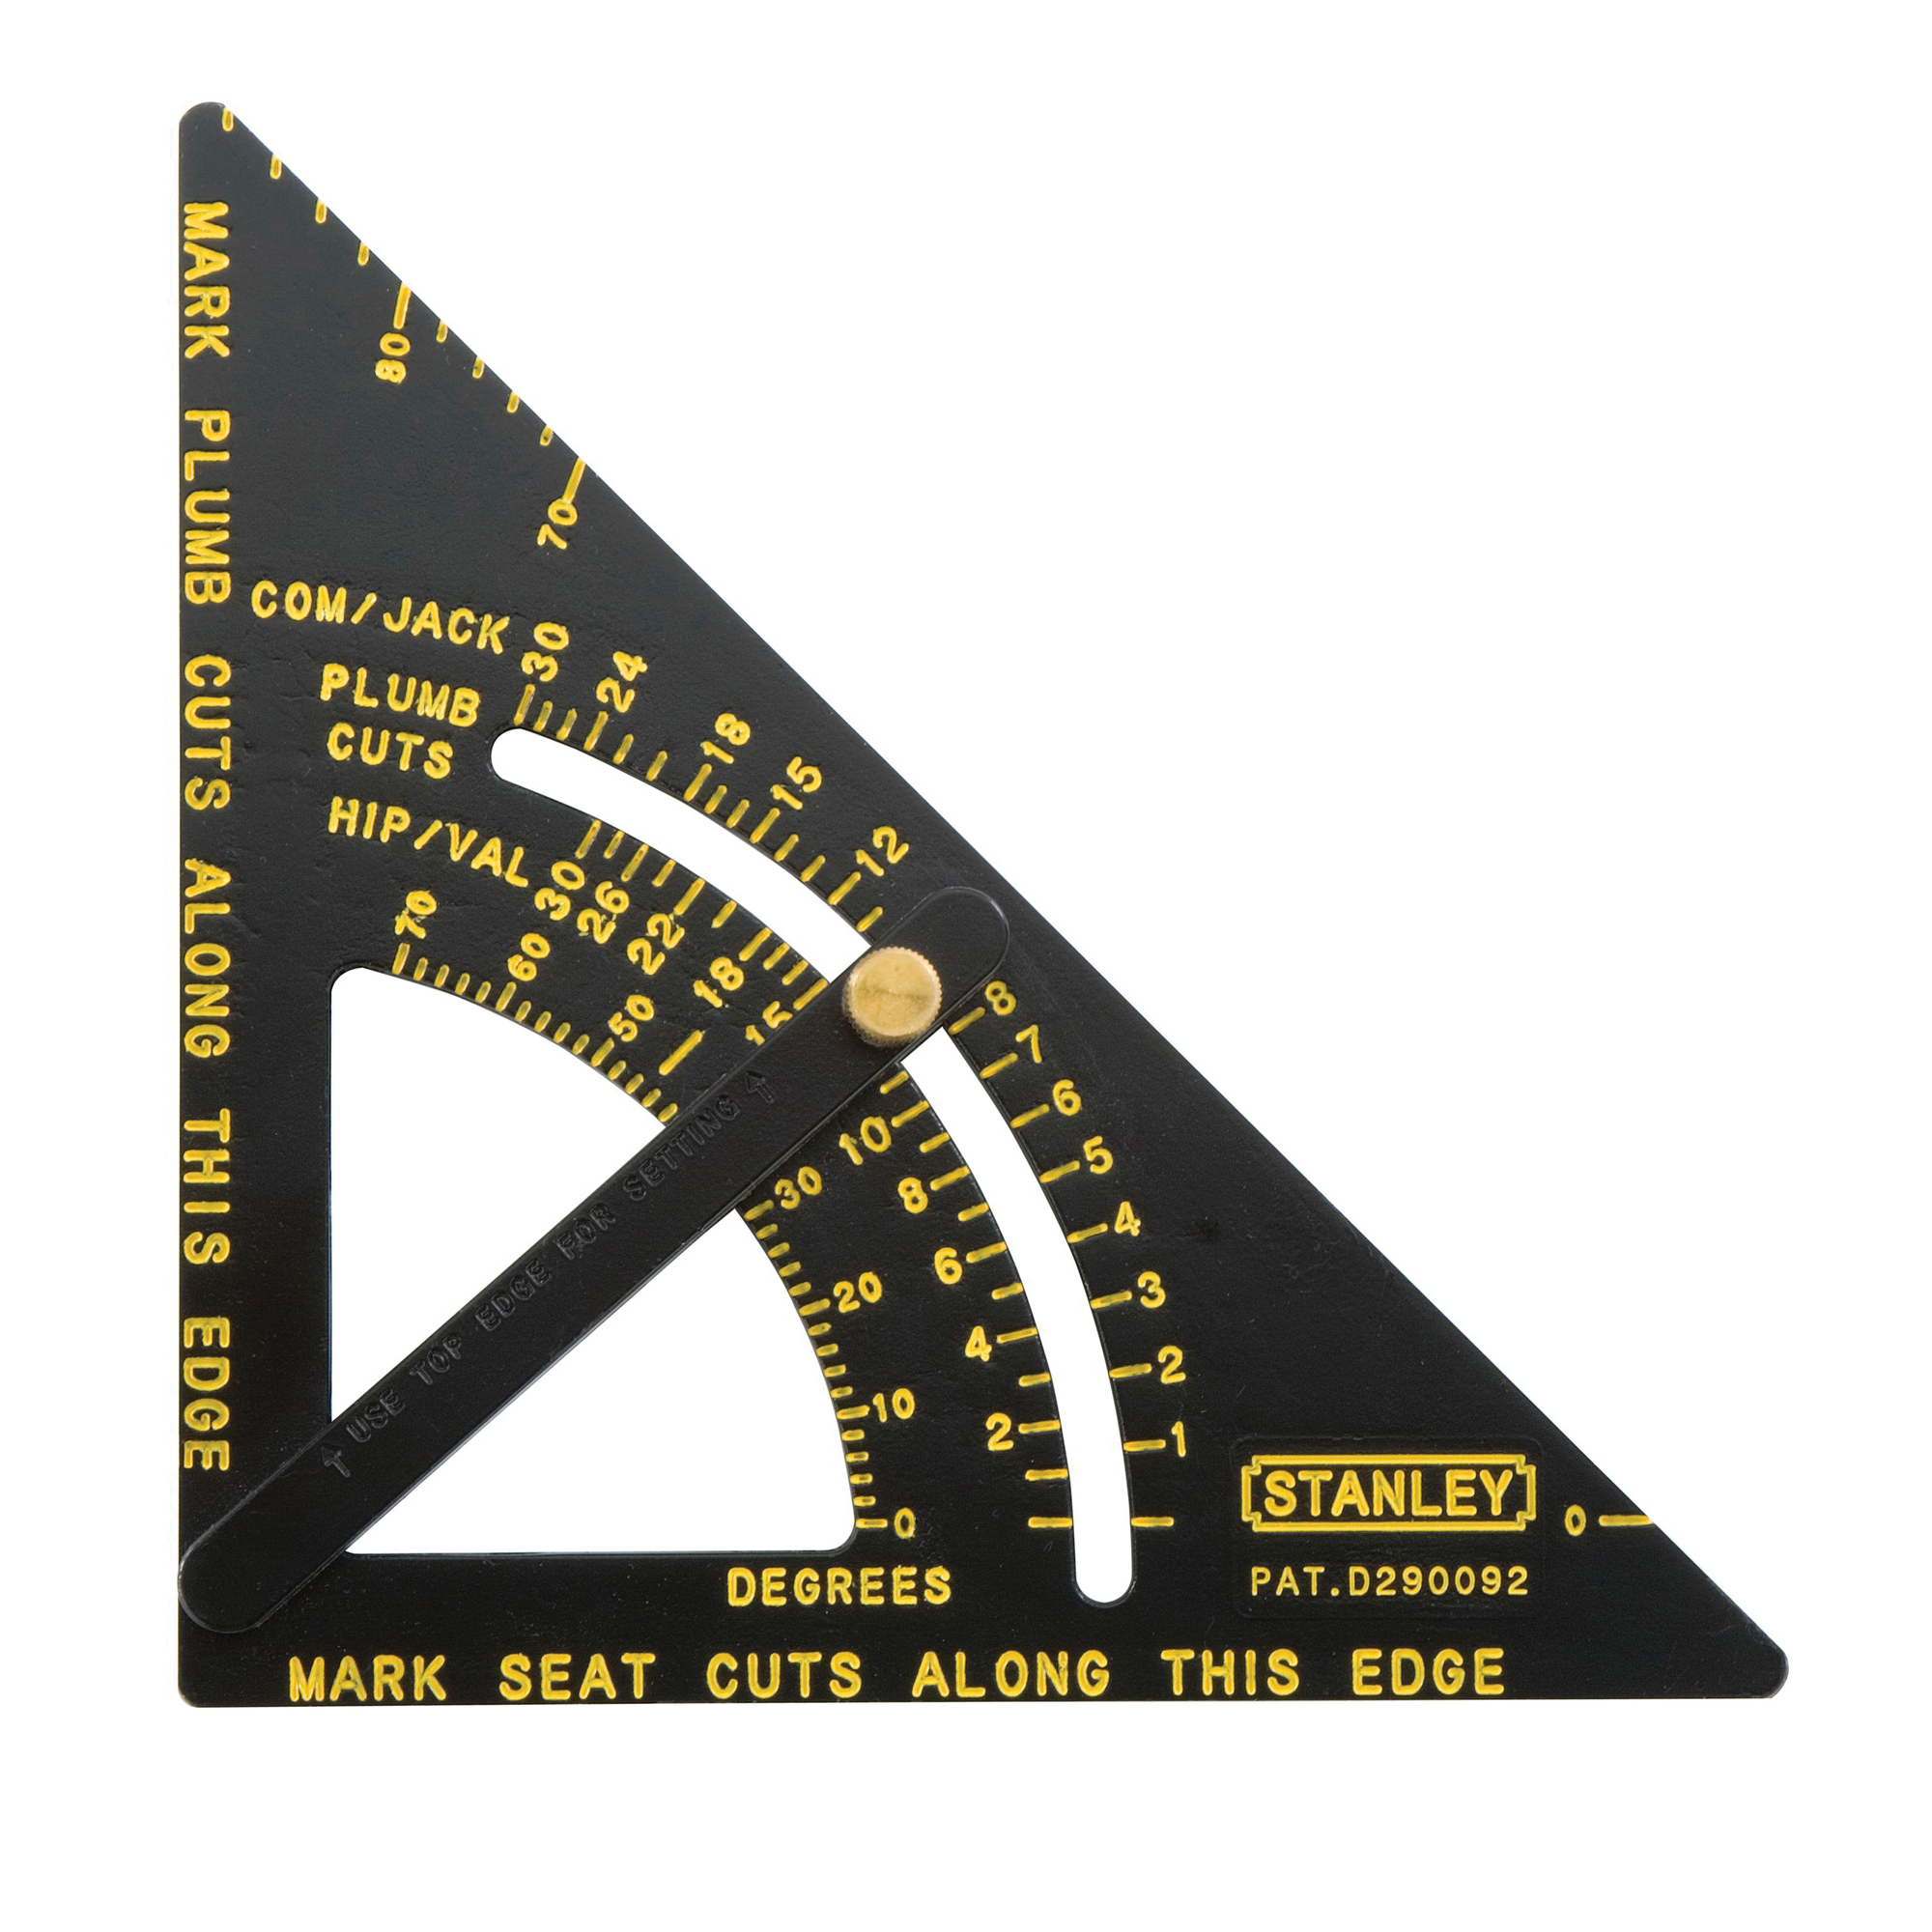 Stanley® 46-053 Quick Square® Adjustable Premium Layout Tool, 10-3/4 x 6-3/4 in, 1/8 in Graduation, 90 deg, Aluminum